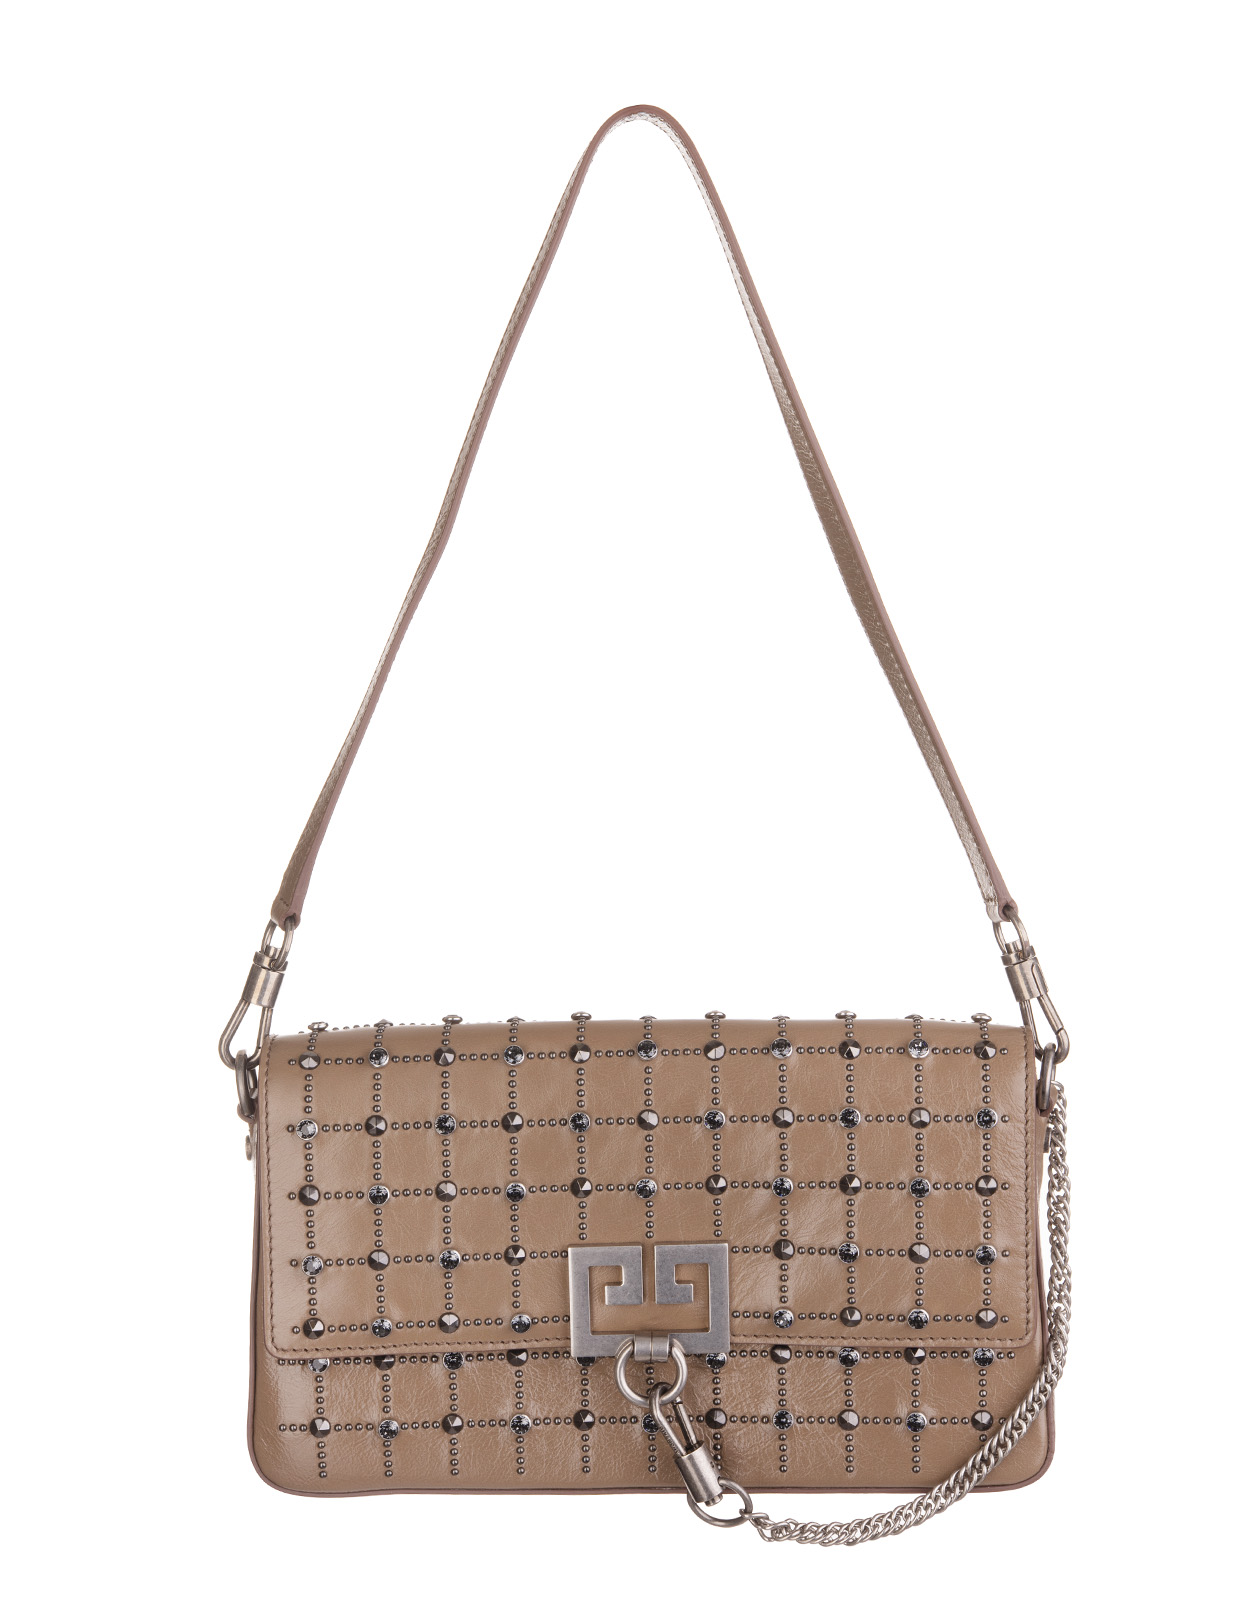 fc28c0576 Taupe Charm Bag In Taupe Leather With Studs - GIVENCHY - Russocapri